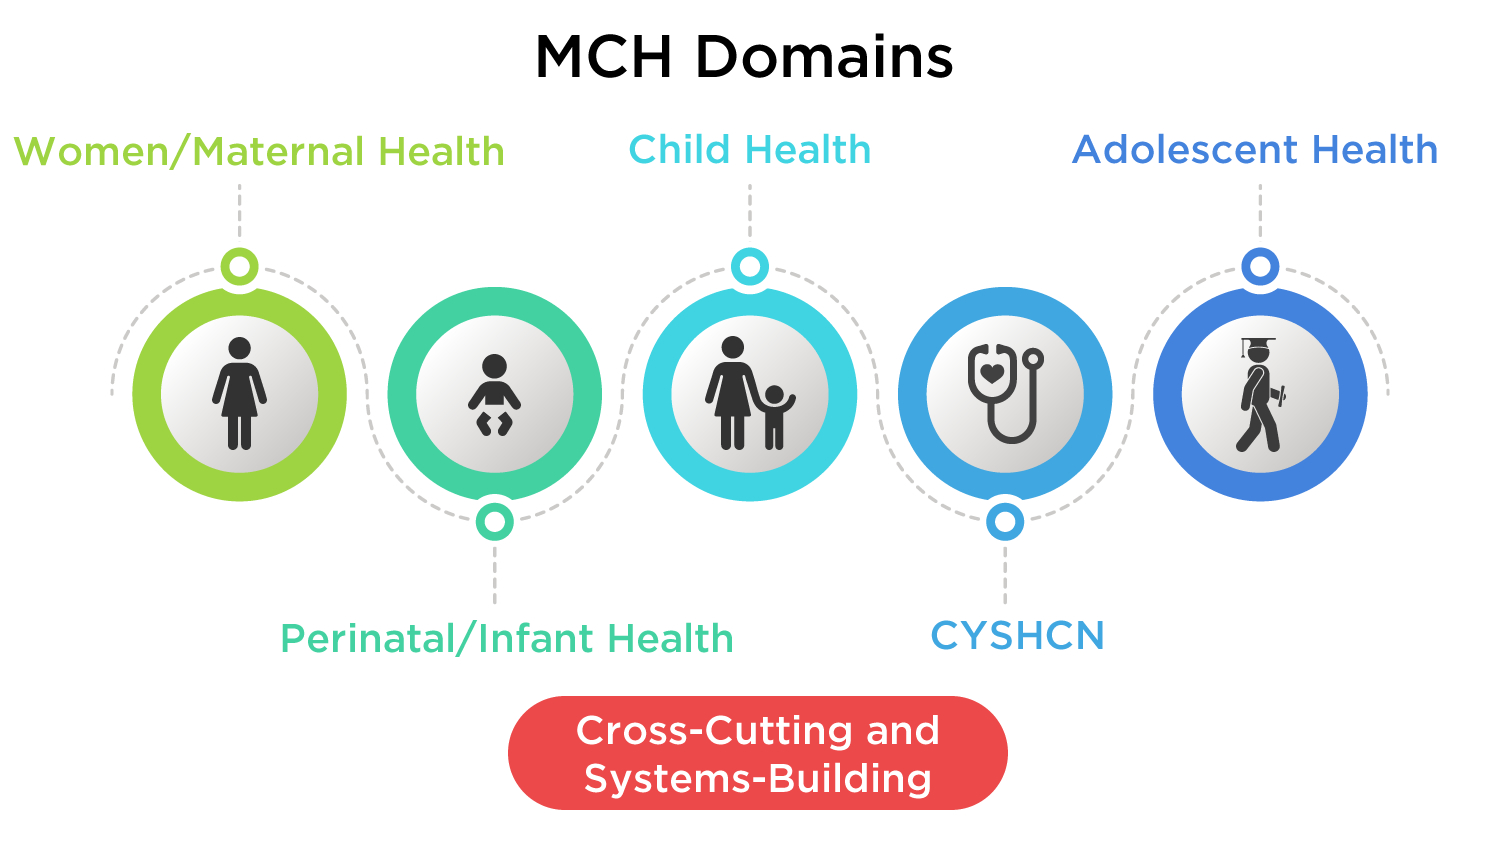 This image of MCH domains is described in the content below